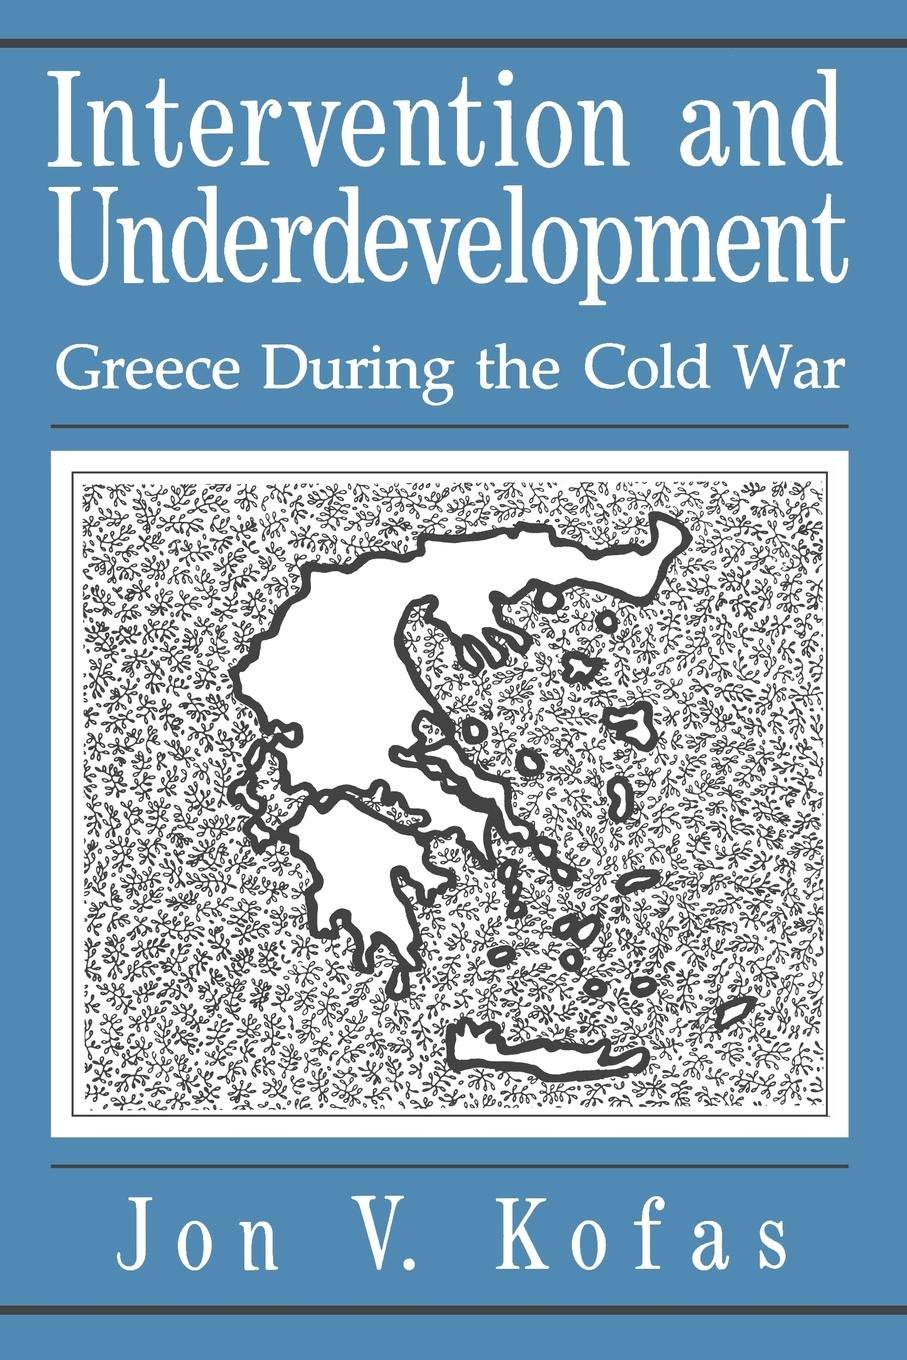 цена Jon V. Kofas Intervention and Underdevelopment. Greece During the Cold War